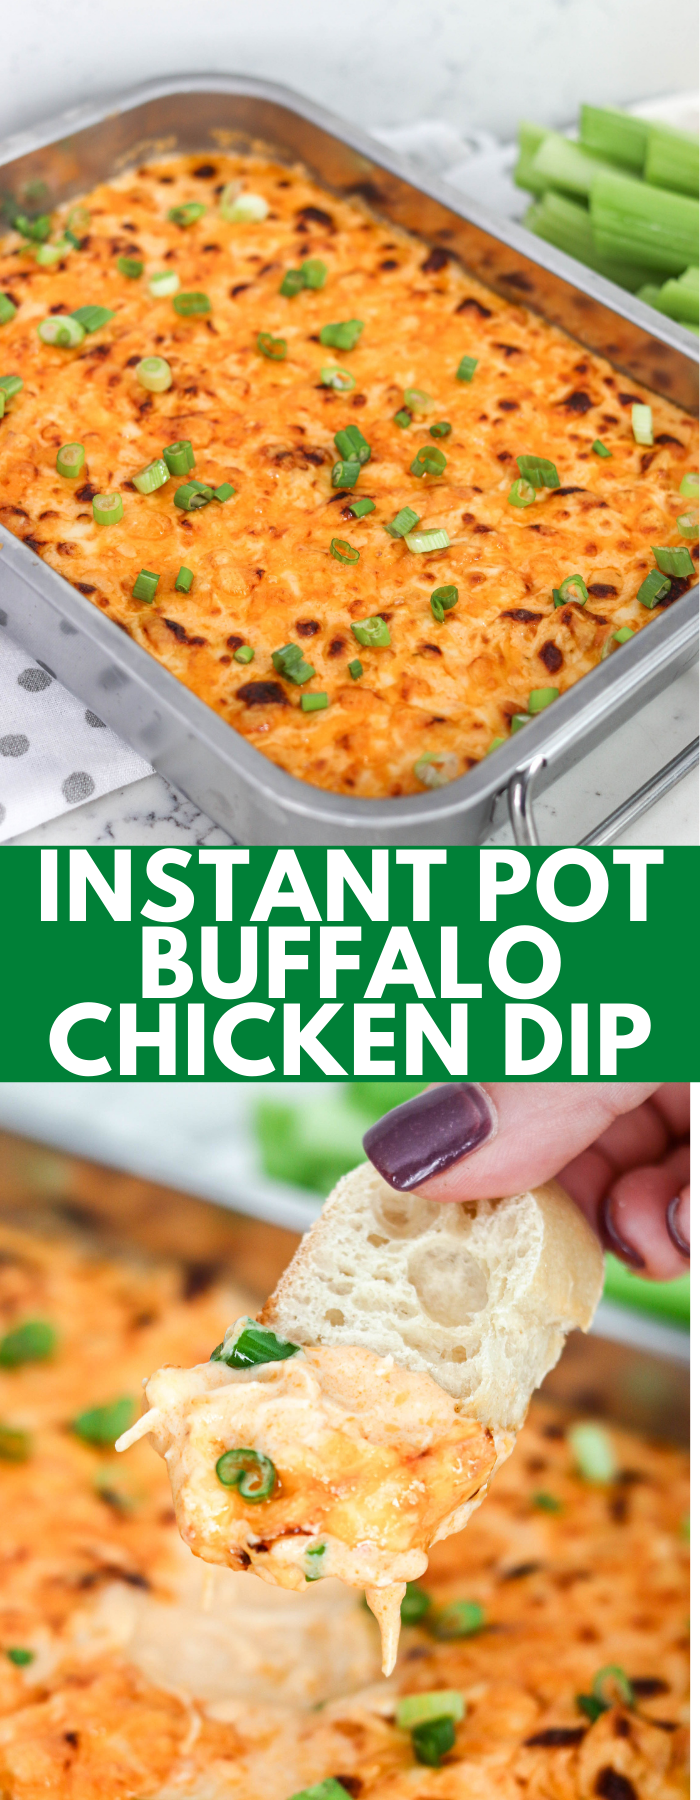 Instant Pot Buffalo Chicken Dip is quick, easy, super creamy, and delicious! With a kick of spice and loaded with cheese, it'll be a go-to party appetizer!